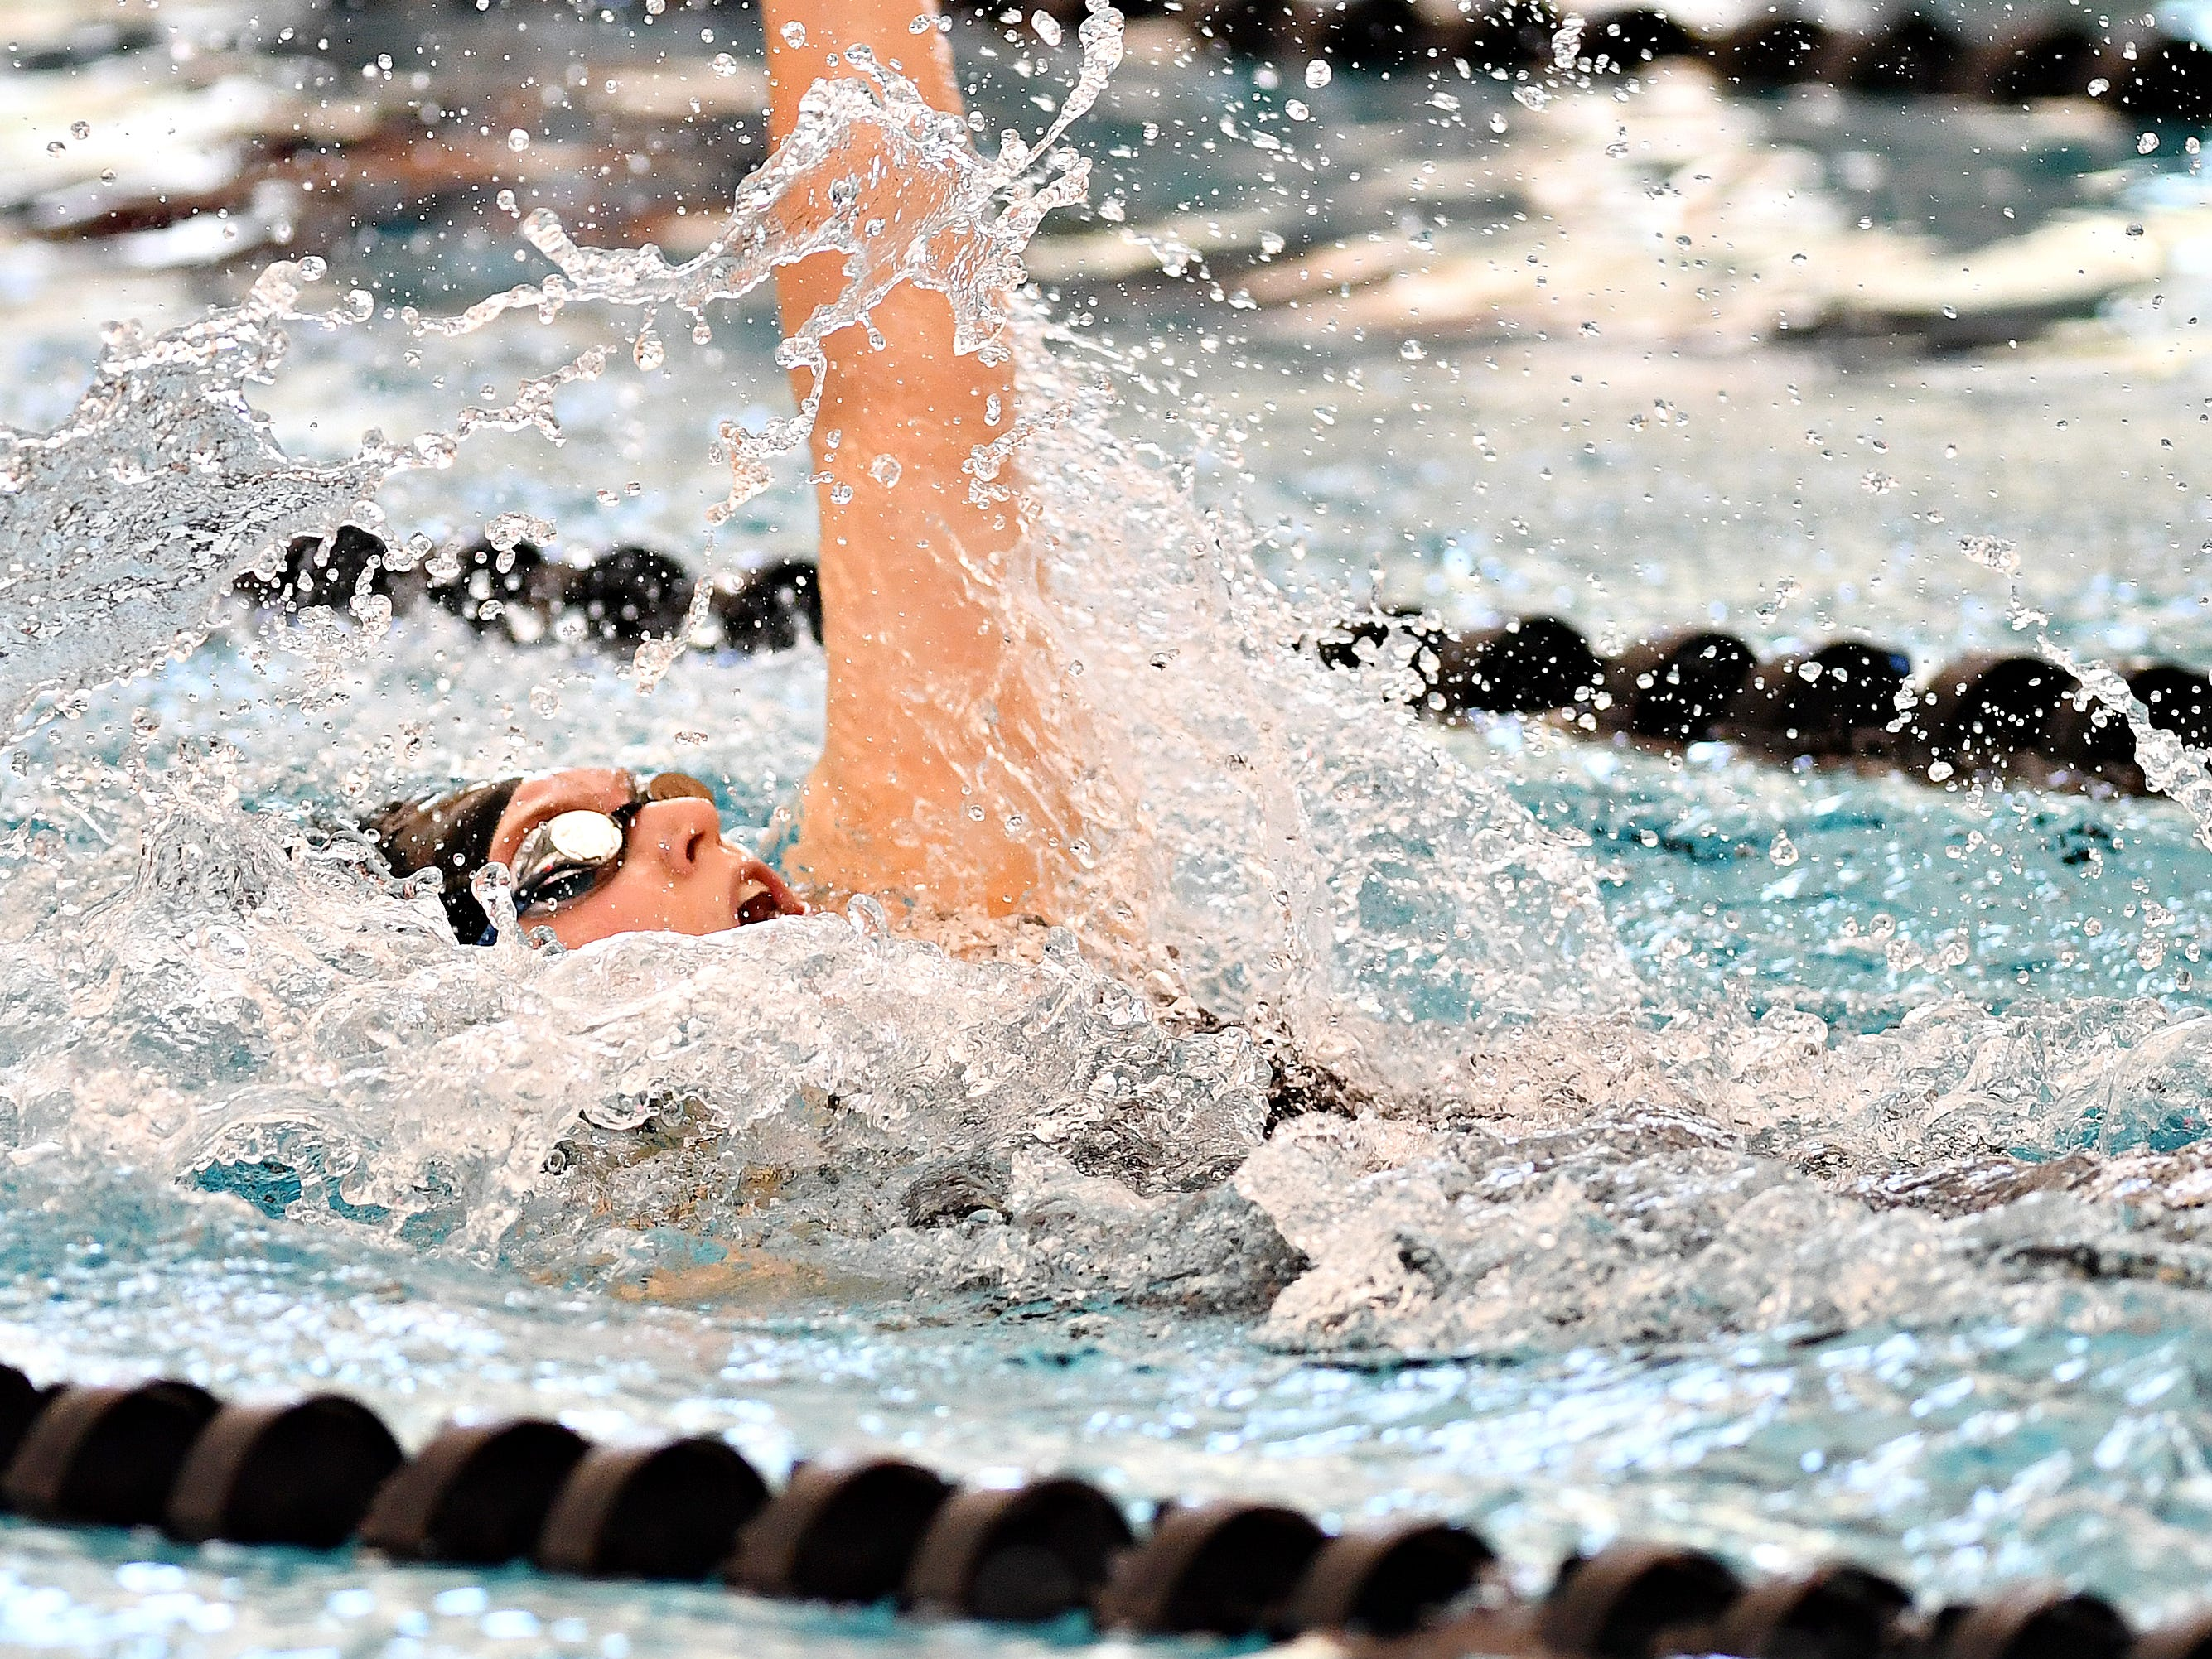 York Suburban's Maddy Abel competes in the 100 Yard Backstroke event during York-Adams League Swimming Championship at Central York High School in Springettsbury Township, Saturday, Feb. 9, 2019. Dawn J. Sagert photo